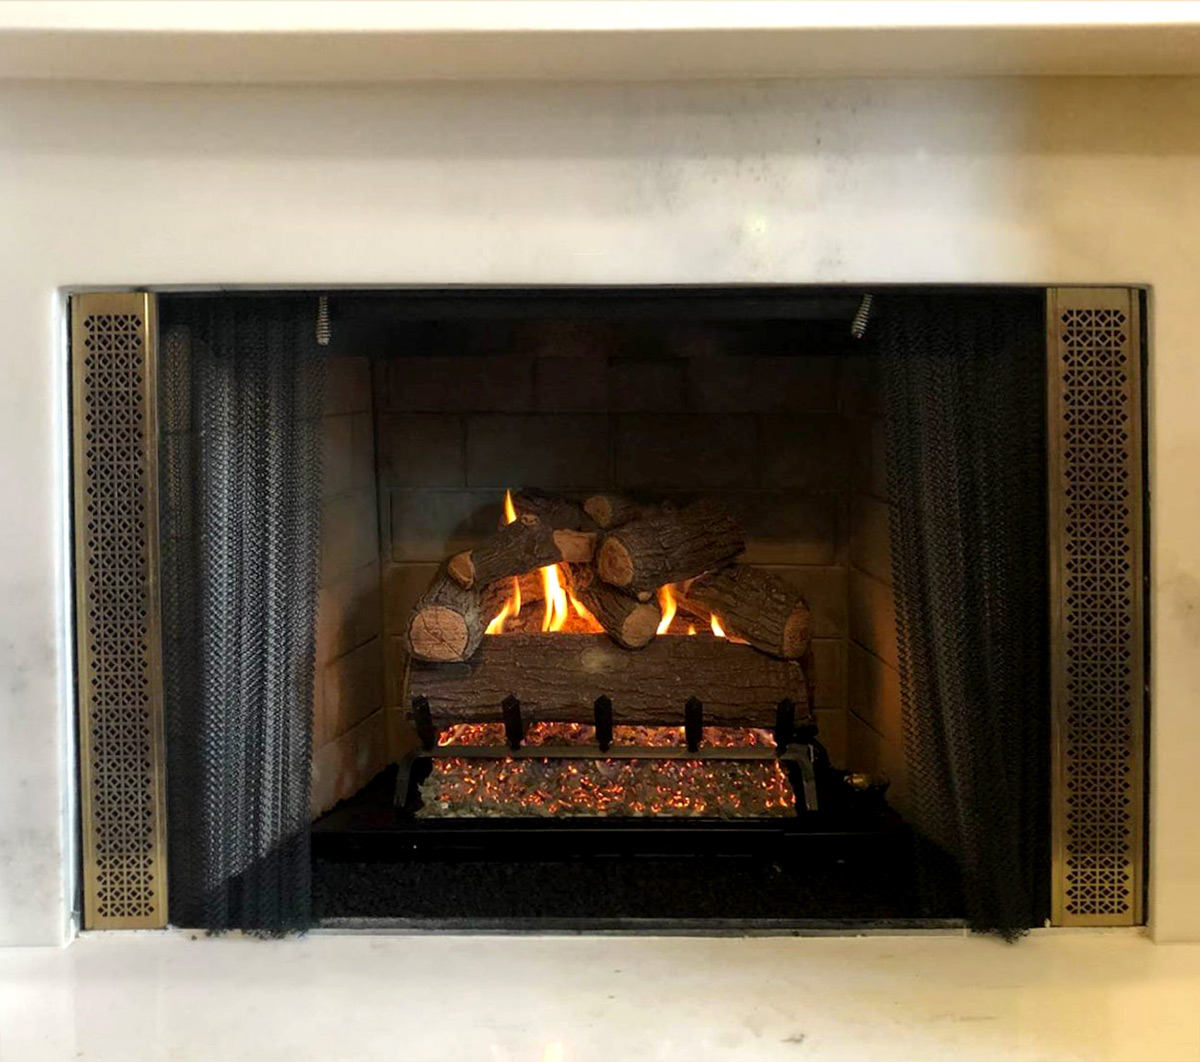 Electric Fireplace Gas Log Installation - After